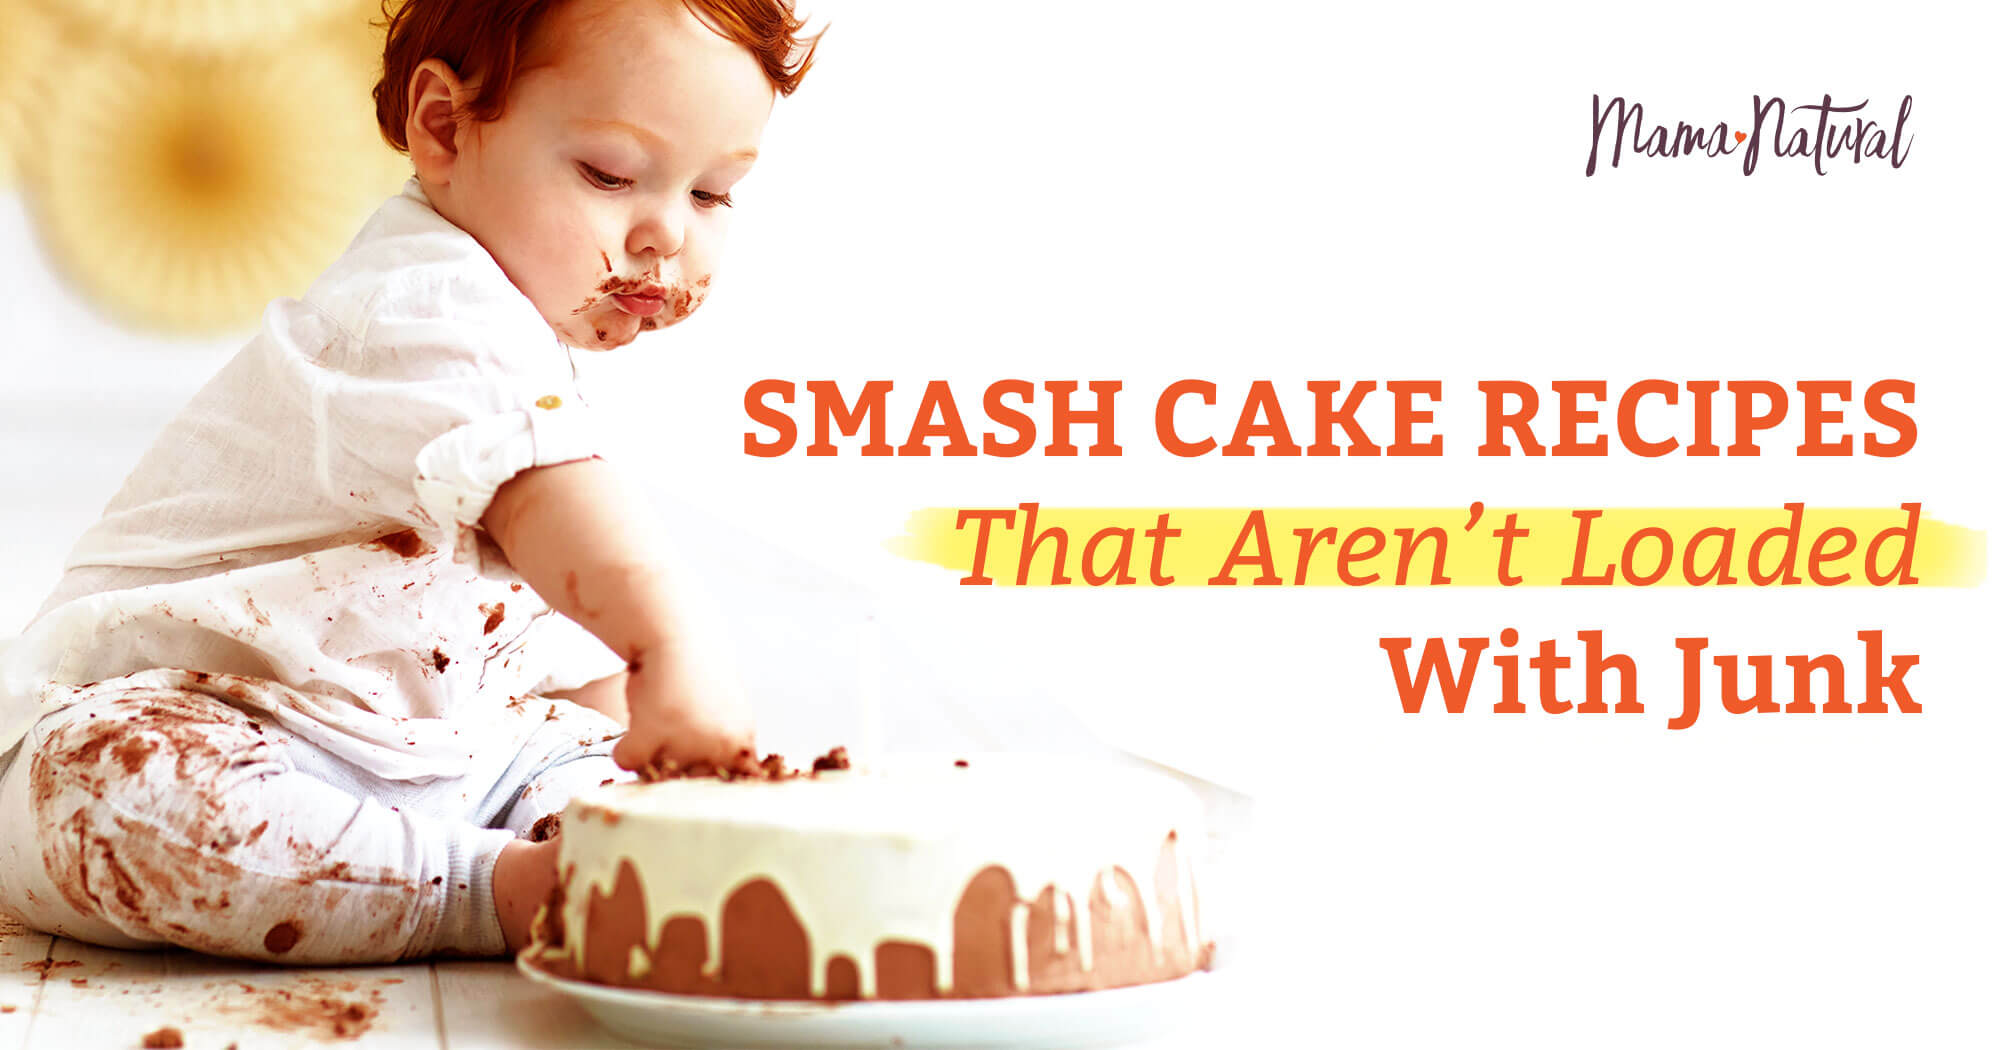 Swell Smash Cakes That Arent Loaded With Junk Mama Natural Funny Birthday Cards Online Alyptdamsfinfo